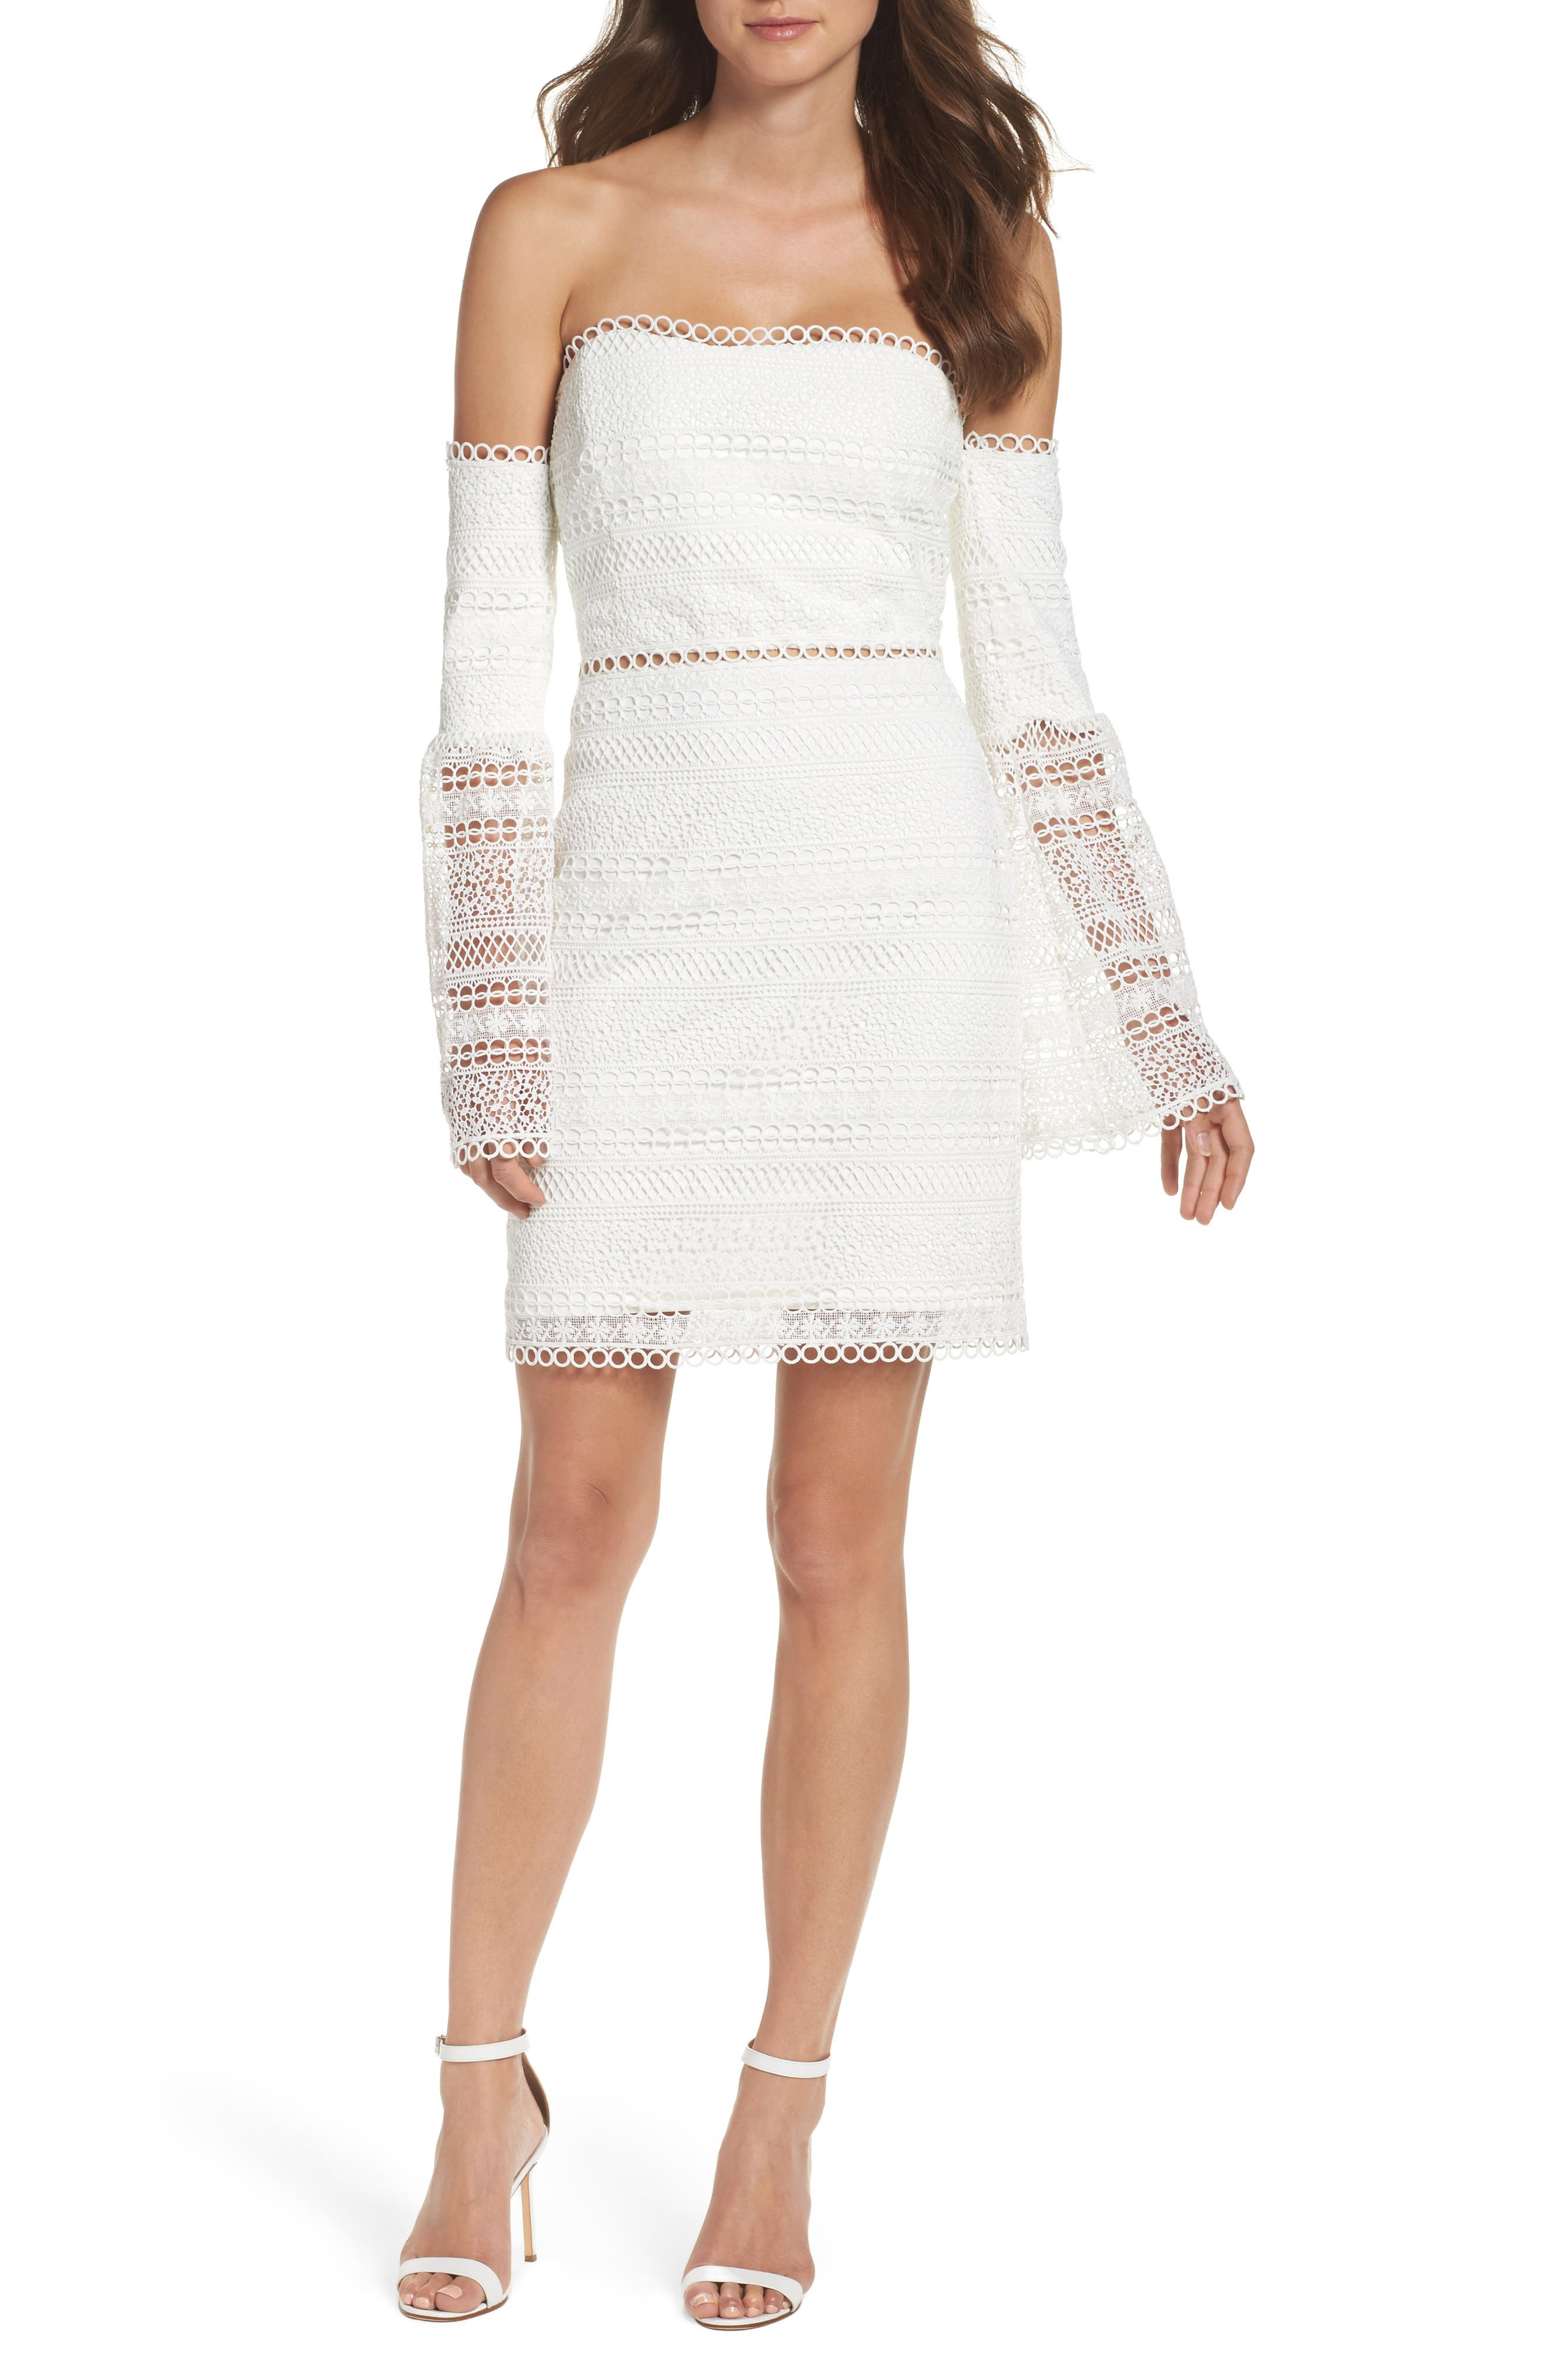 Catalina Lace Off the Shoulder Sheath Dress,                         Main,                         color, White